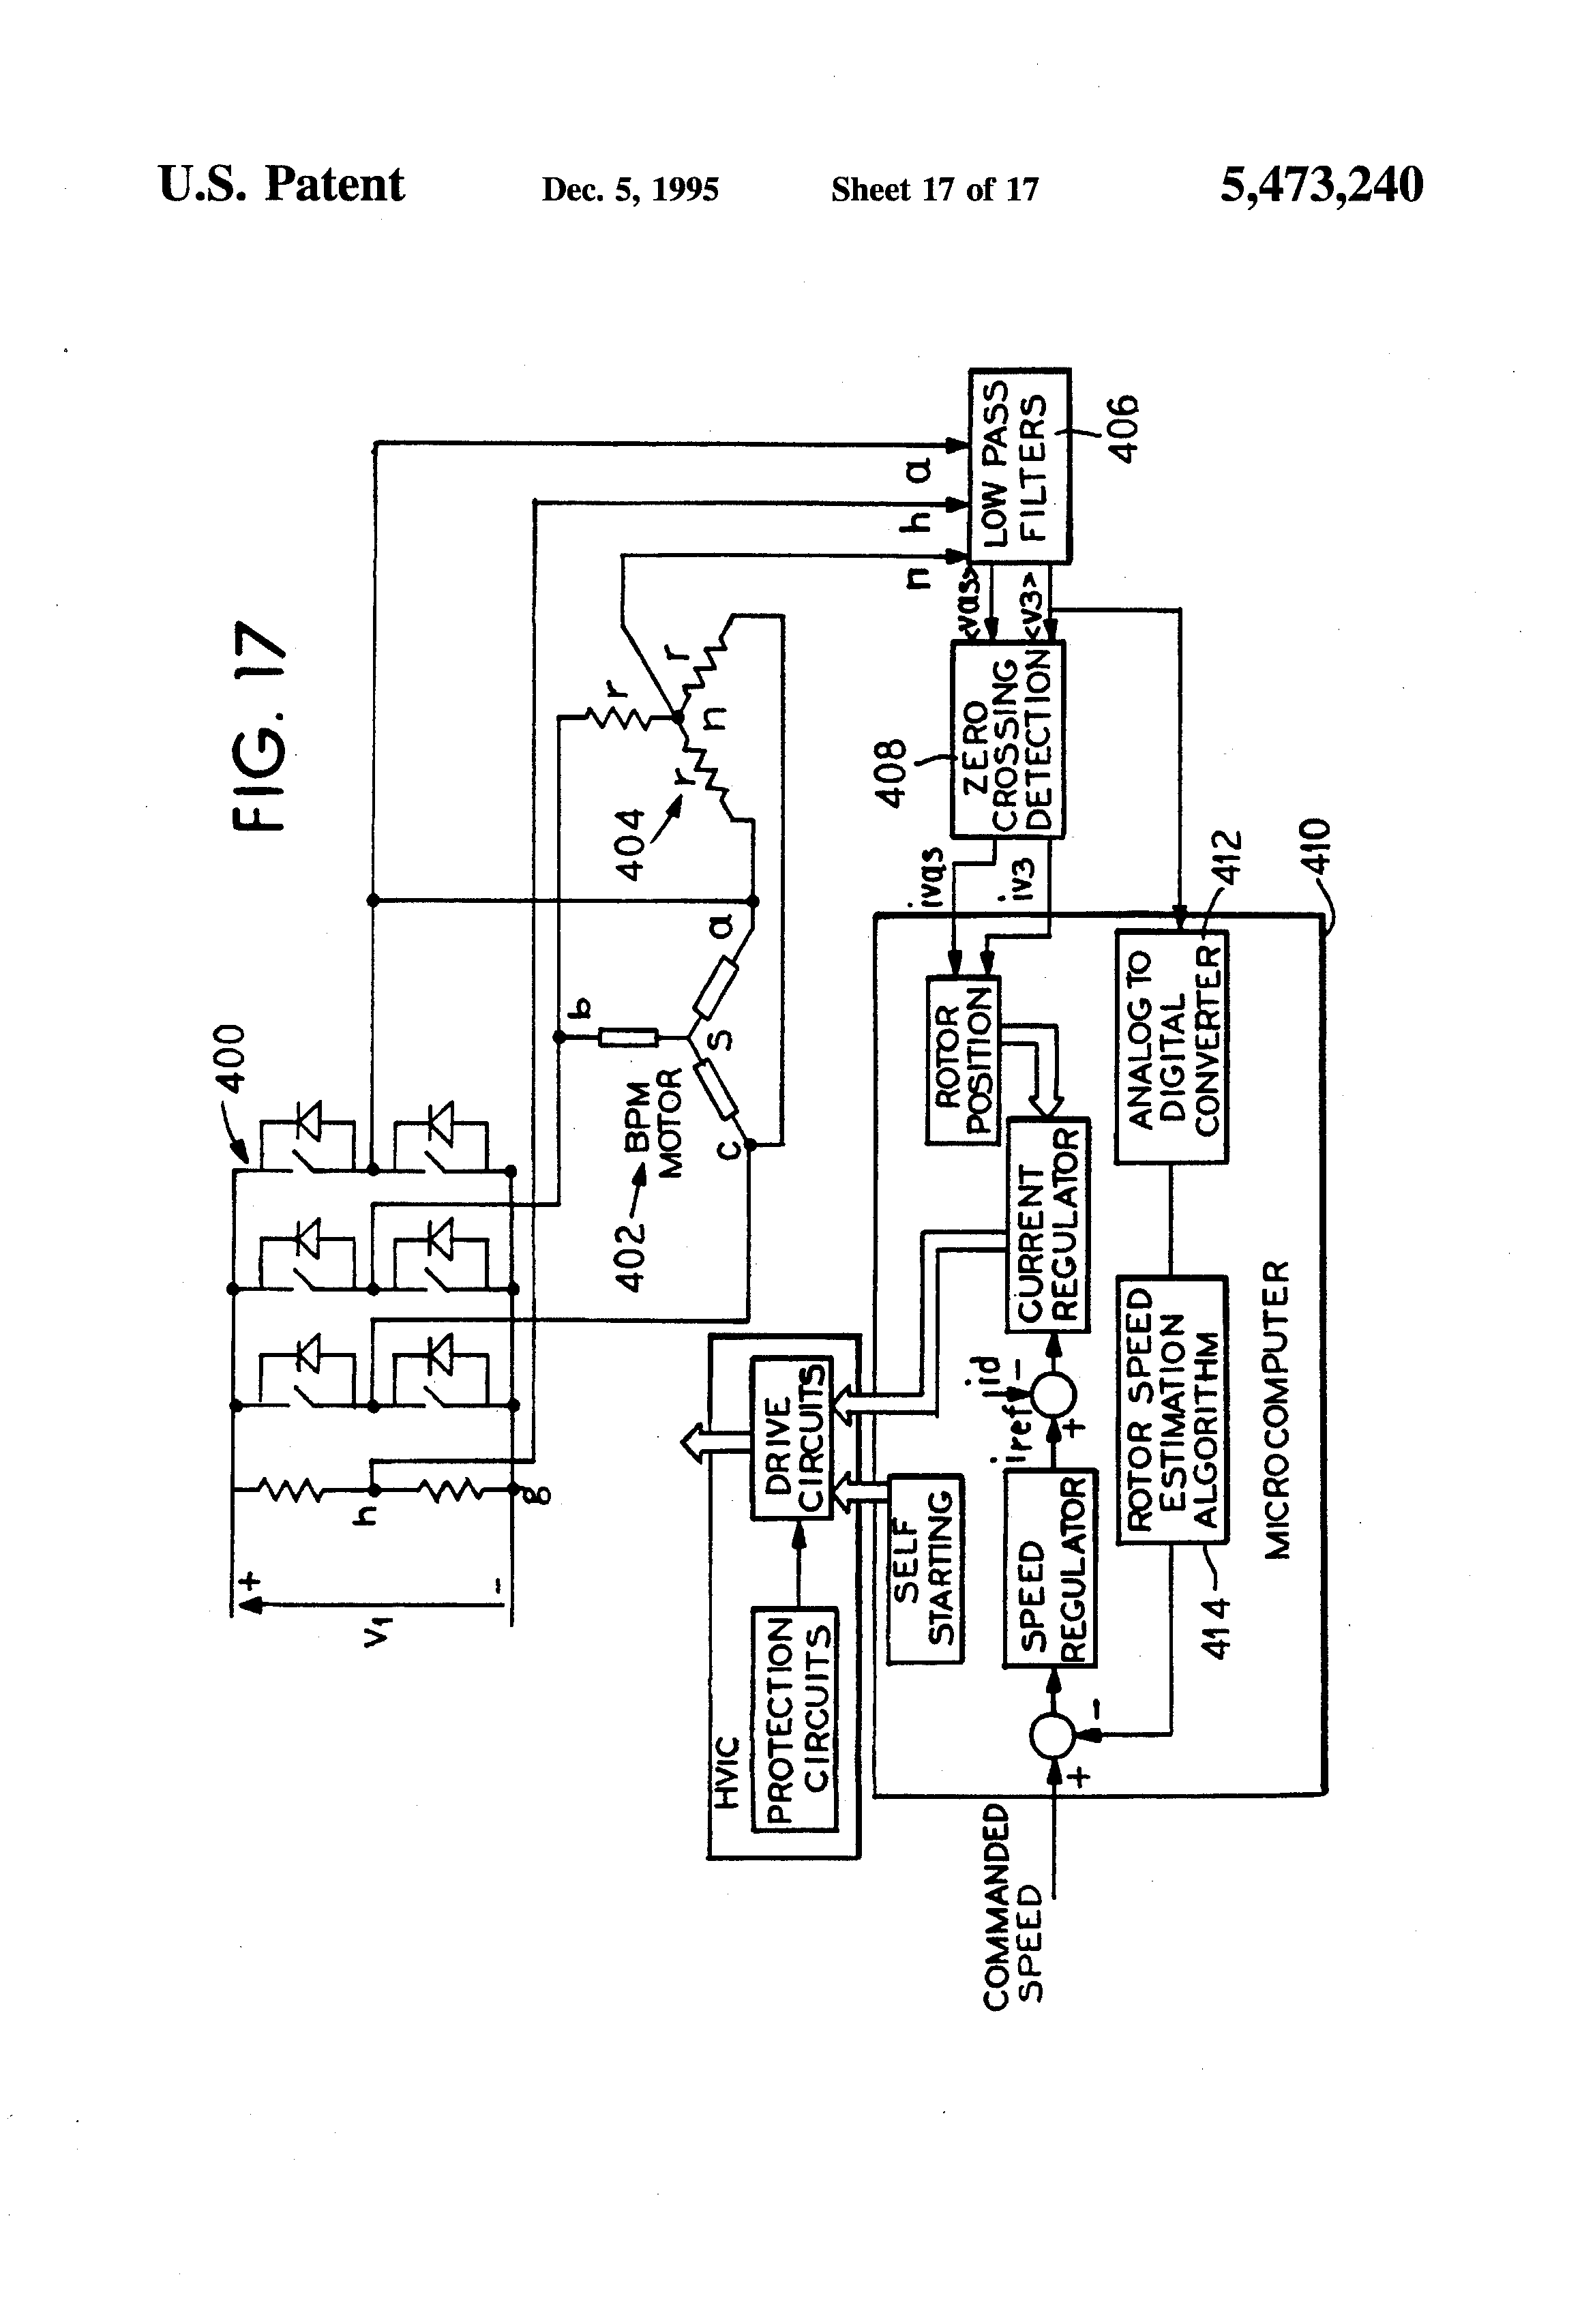 Motor Winding Diagram Further Bodine Electric Motor Wiring Diagram On